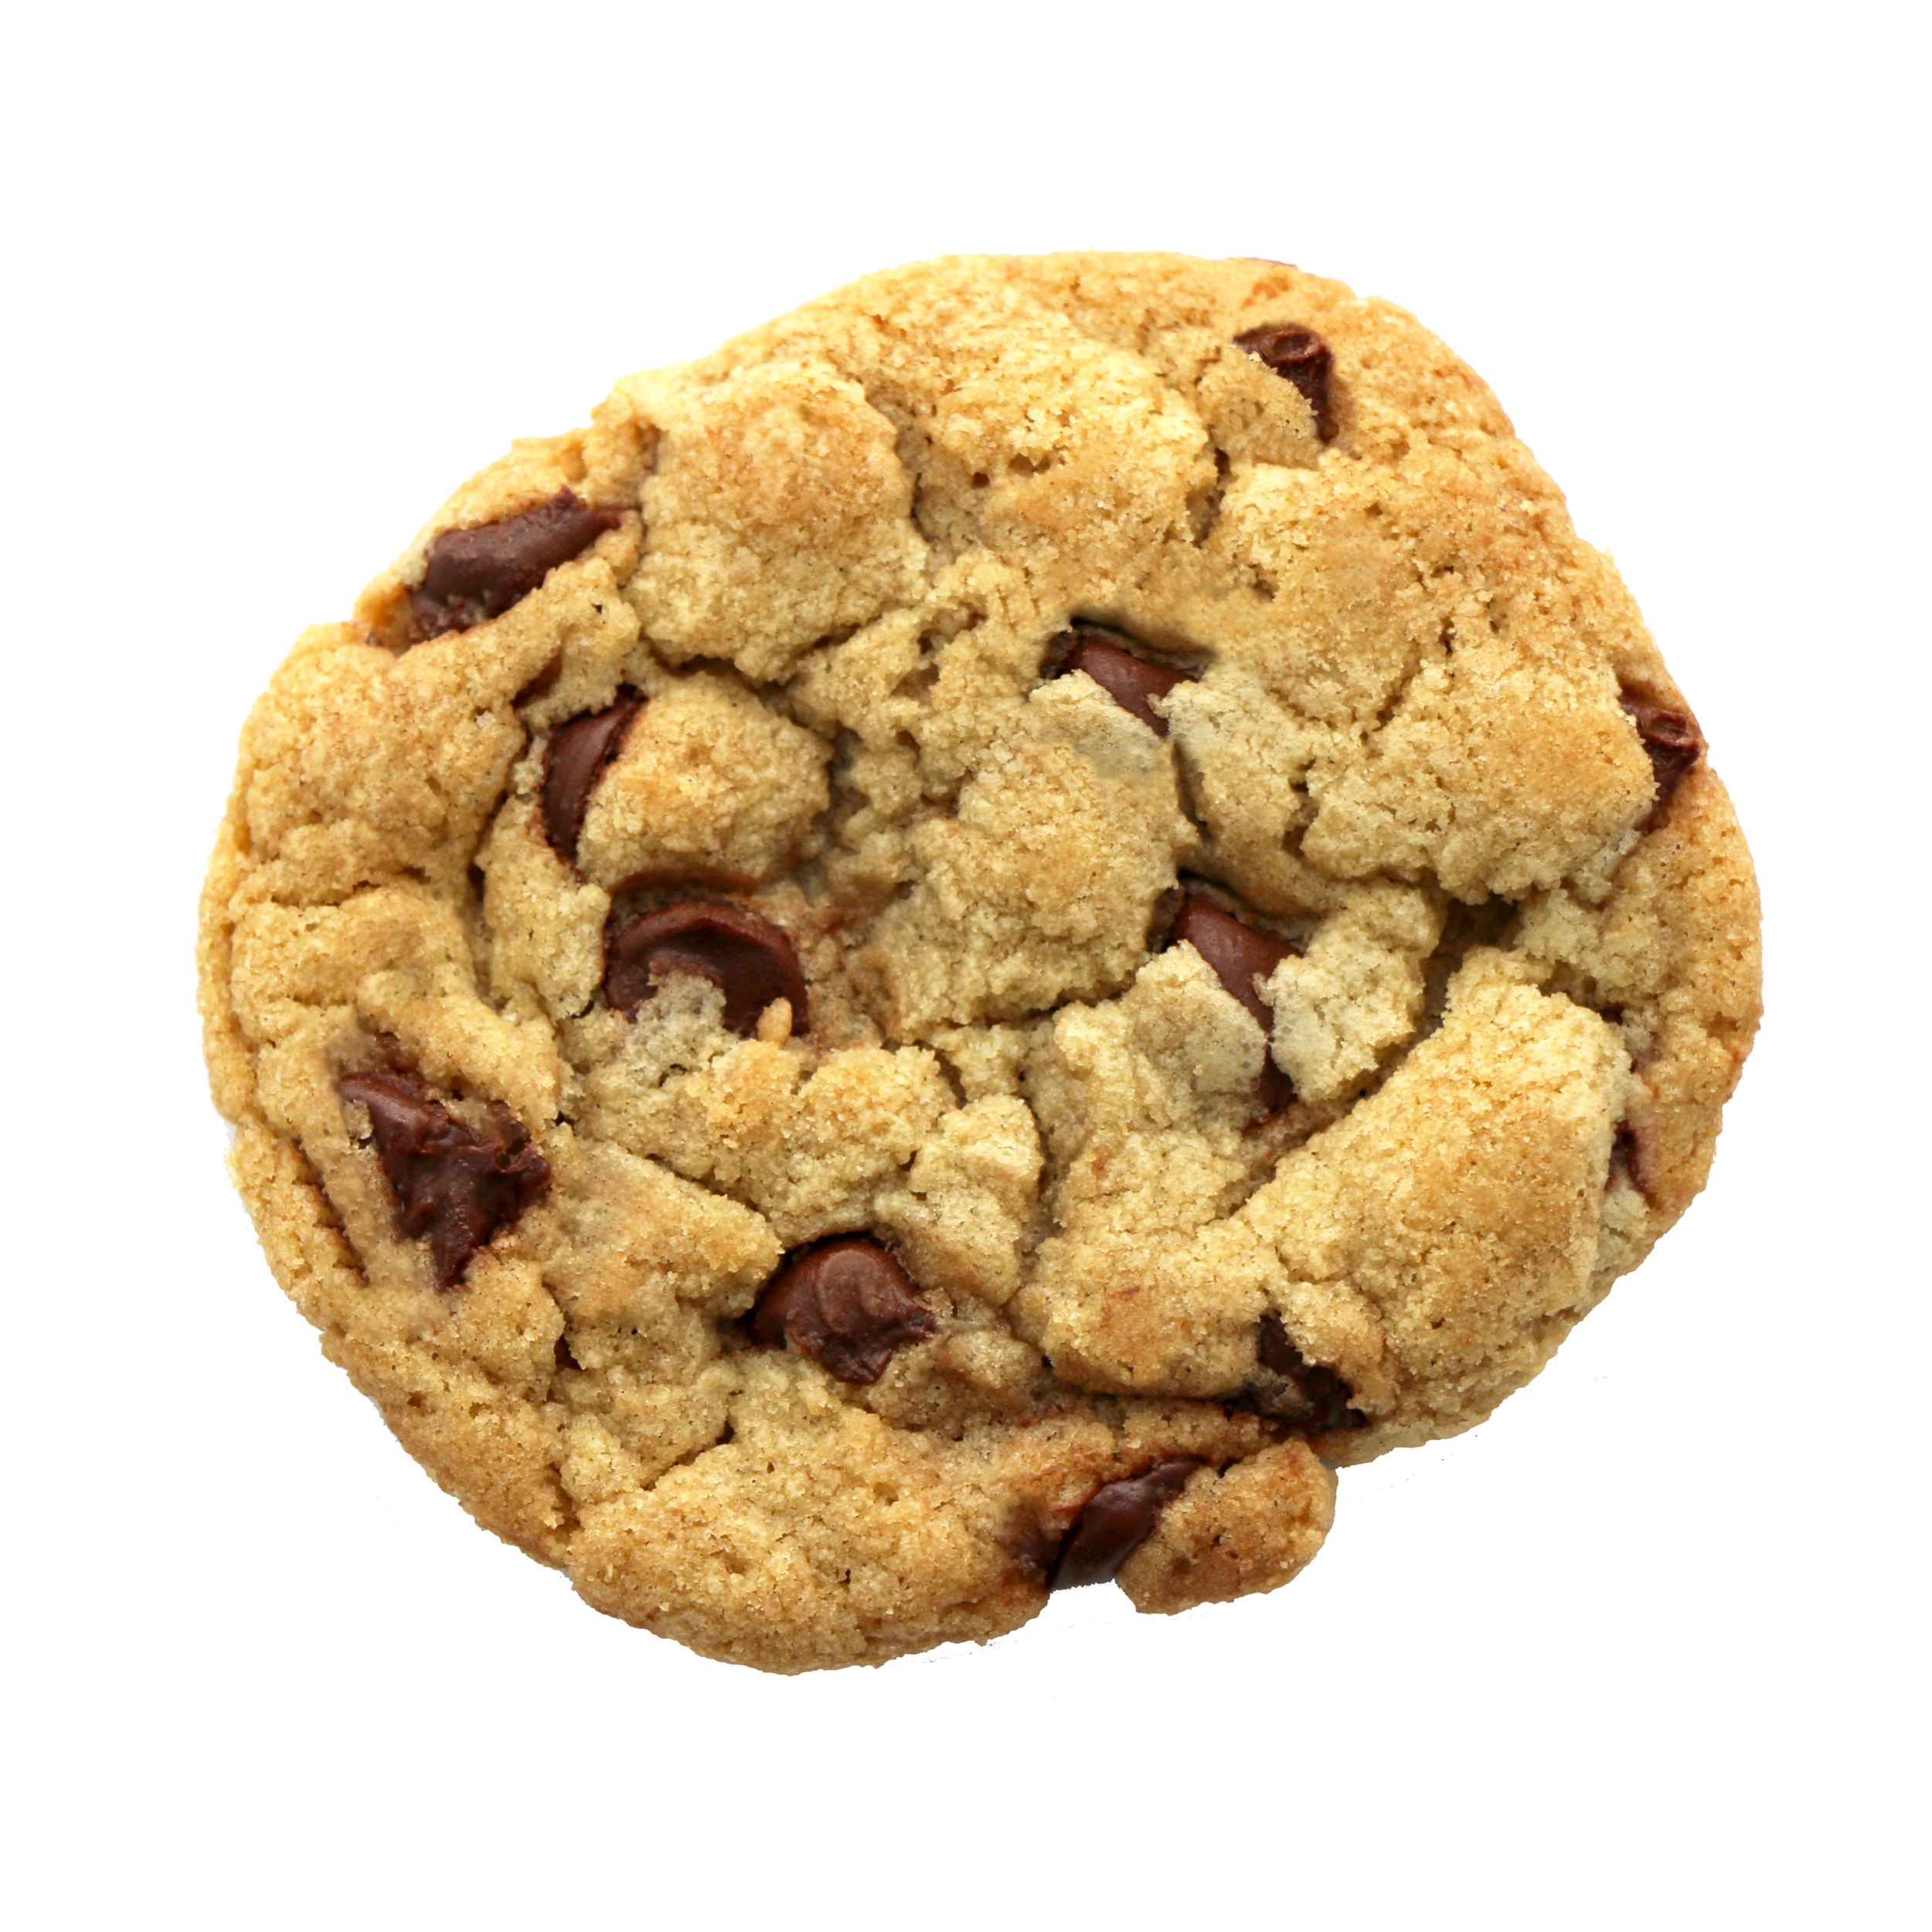 10 MG CHOCOLATE CHIP COOKIE   The traditional comfort cookie taken to a whole new level in a bigger more cookie to love size!  View Ingredients